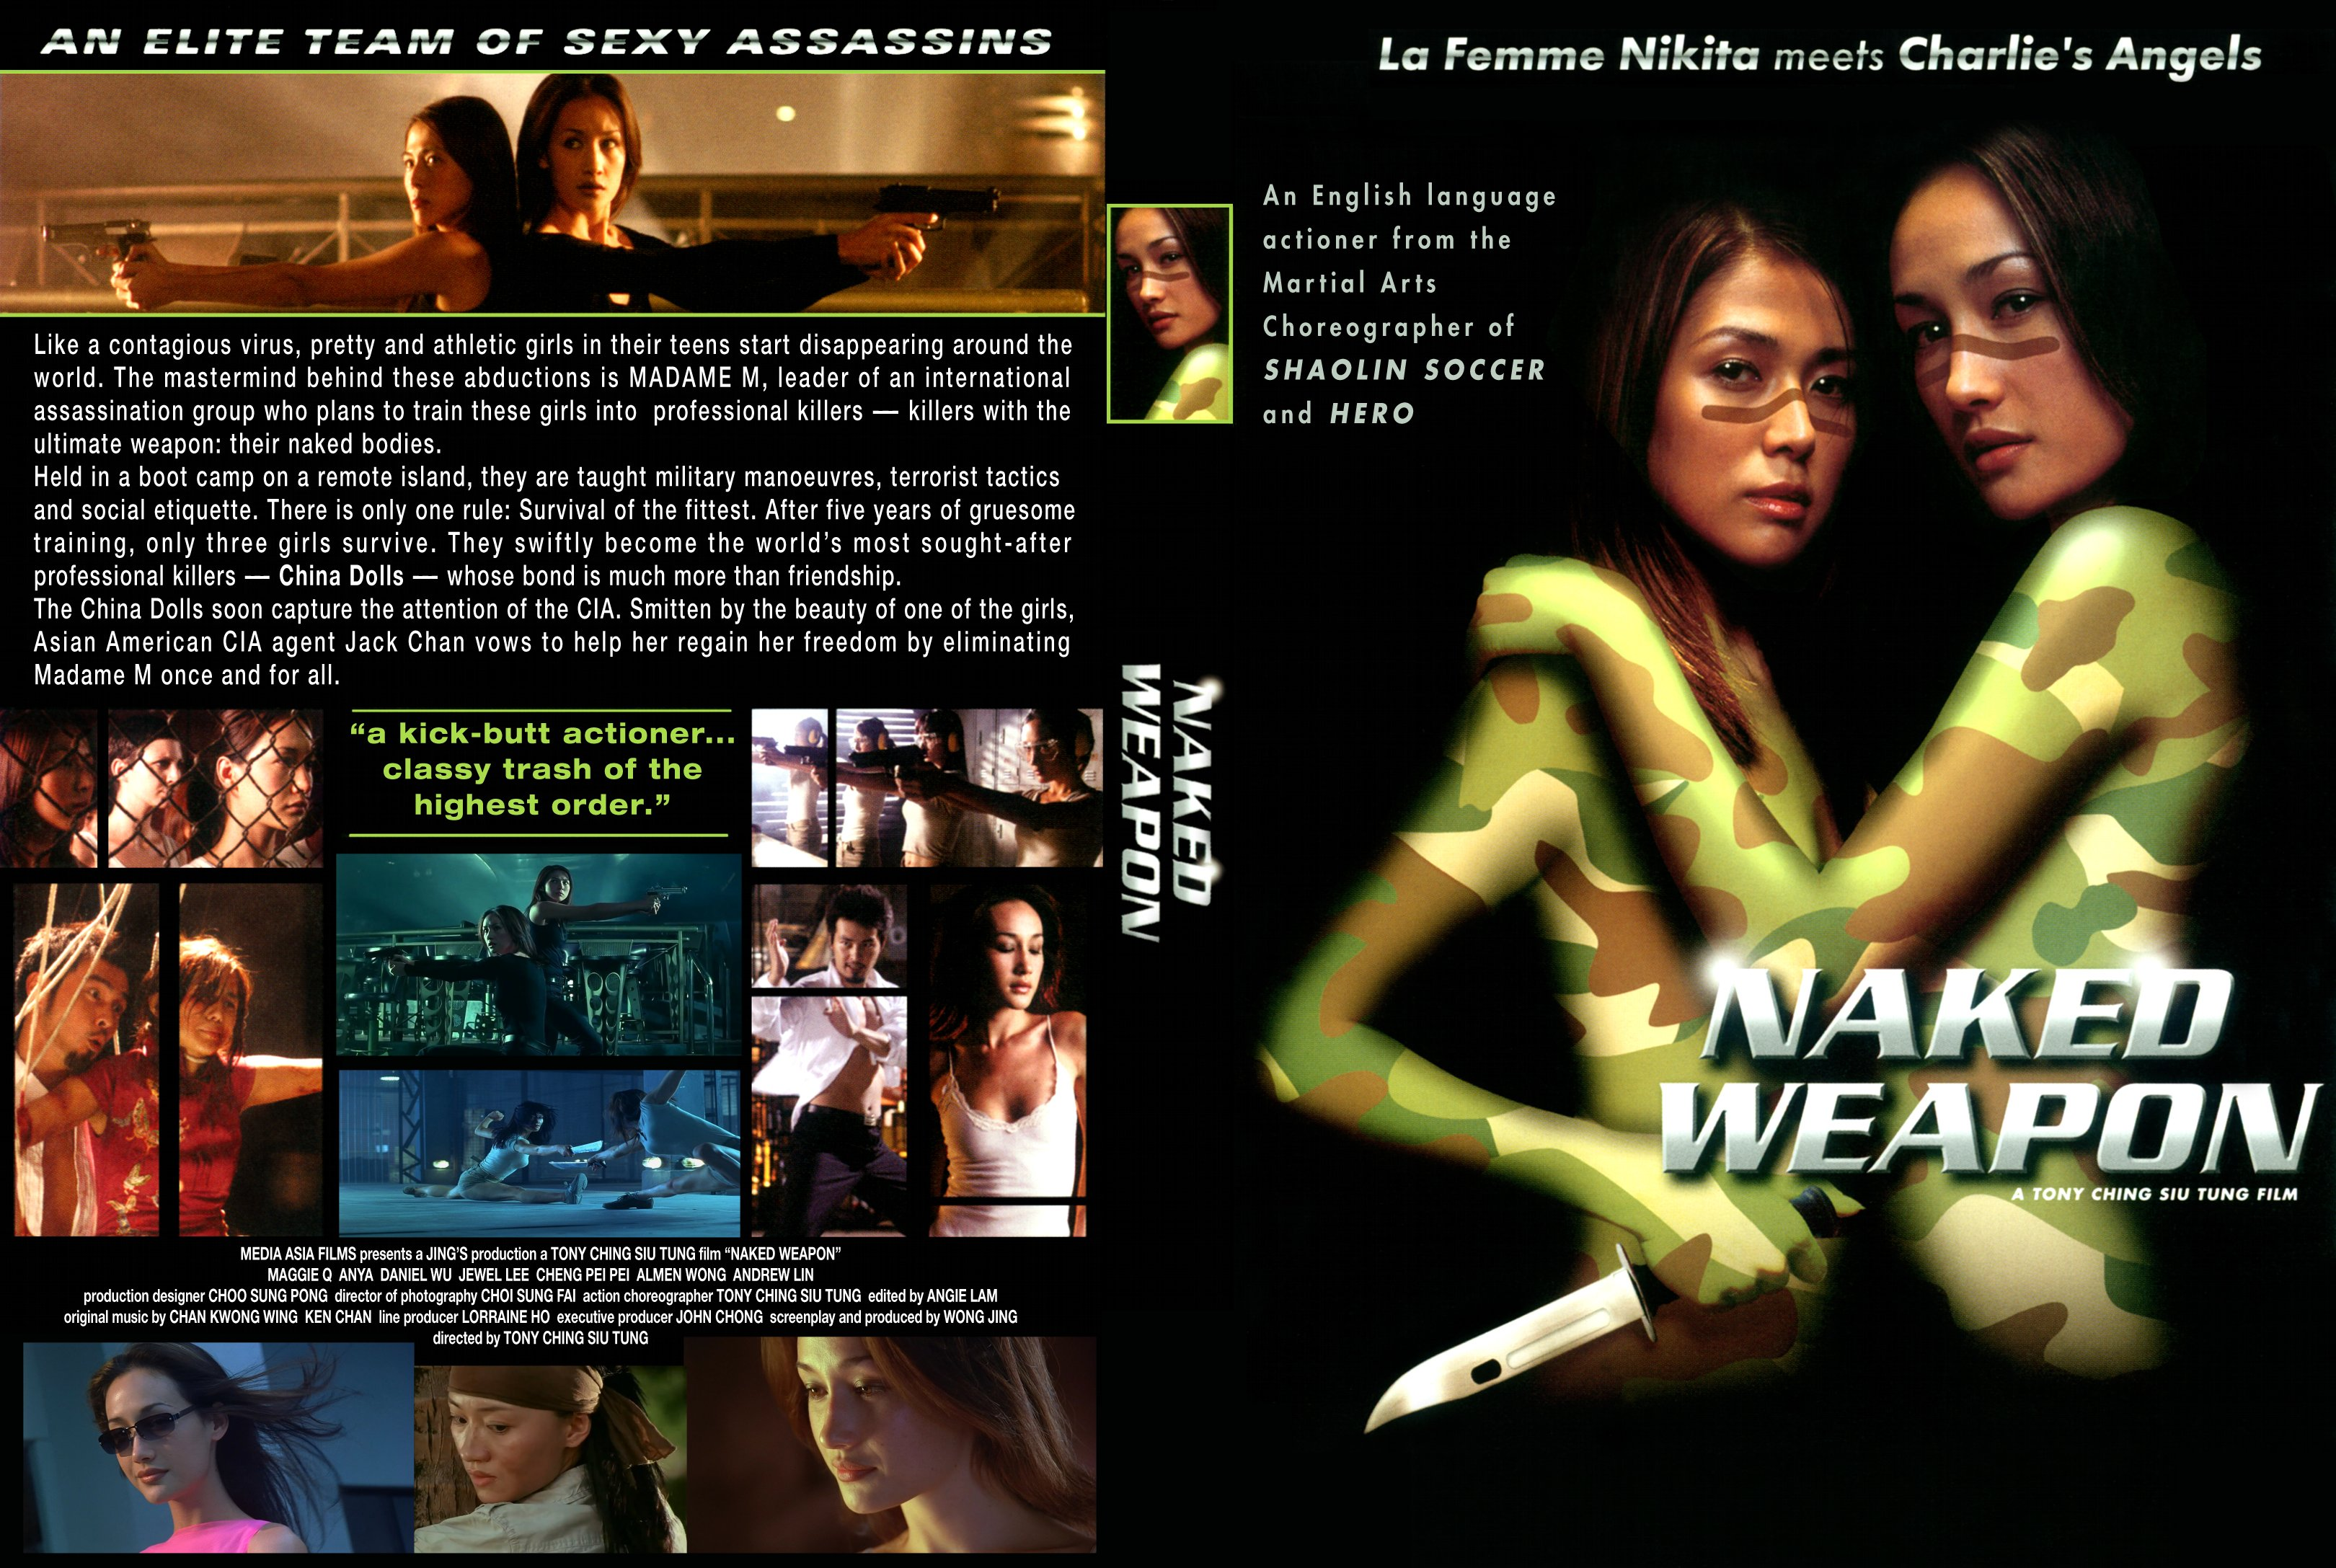 Naked Weapon (2002) Unrated 720p BDRip Multi Telugu Dubbed